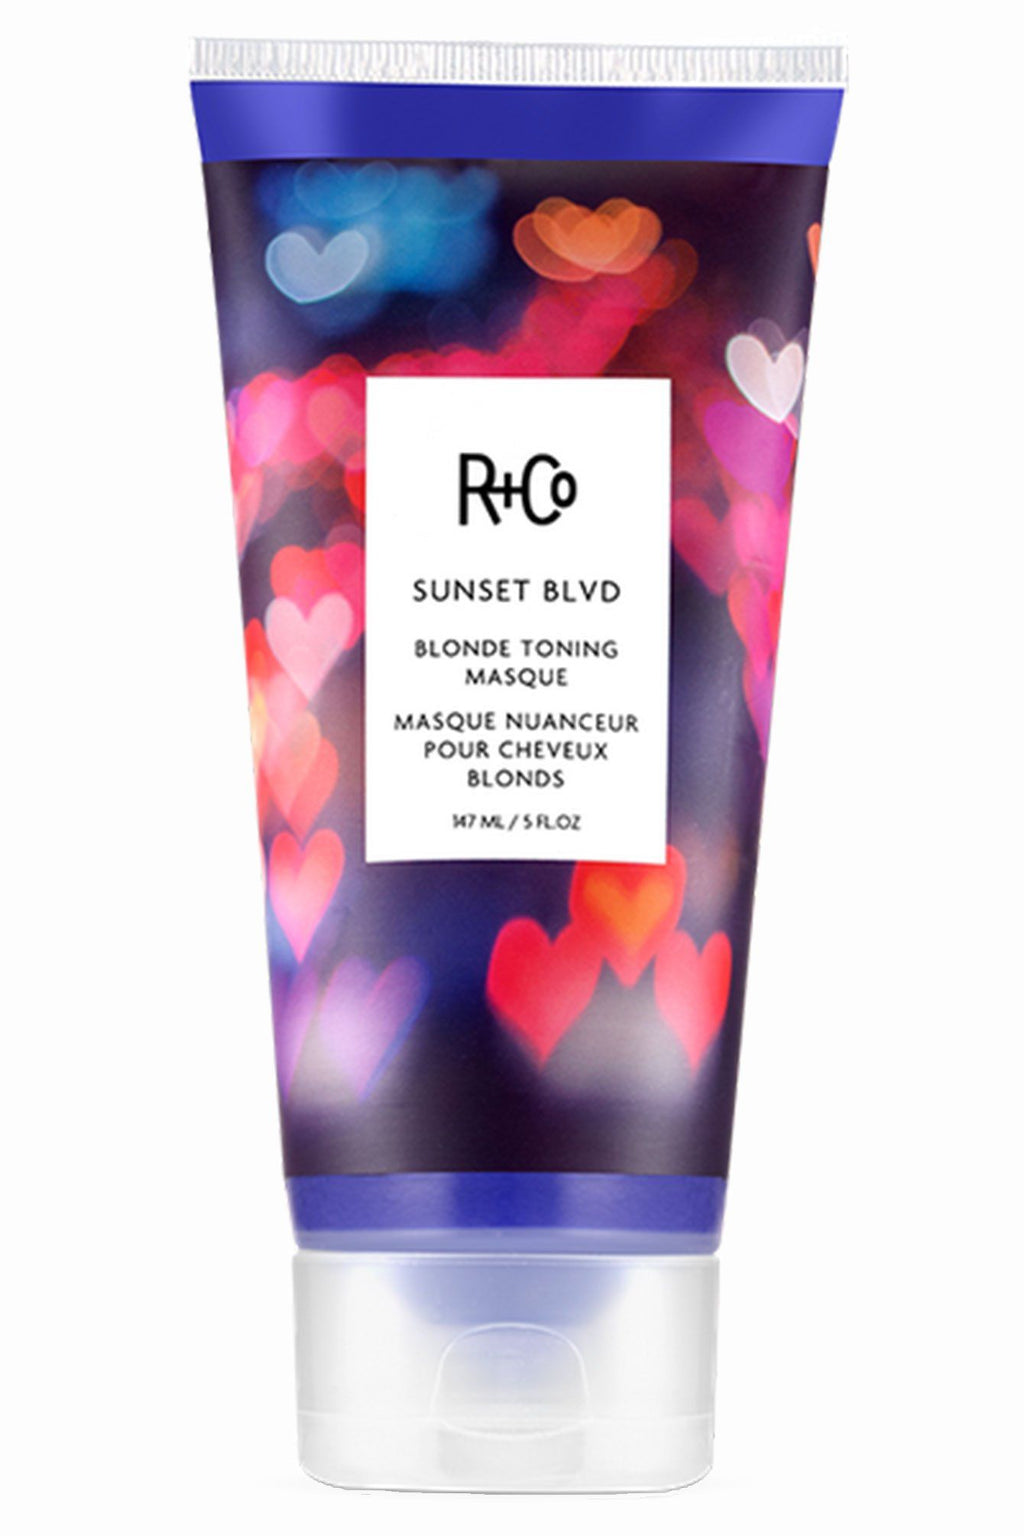 R+CO | Sunset BLVD Blonde Toning Masque